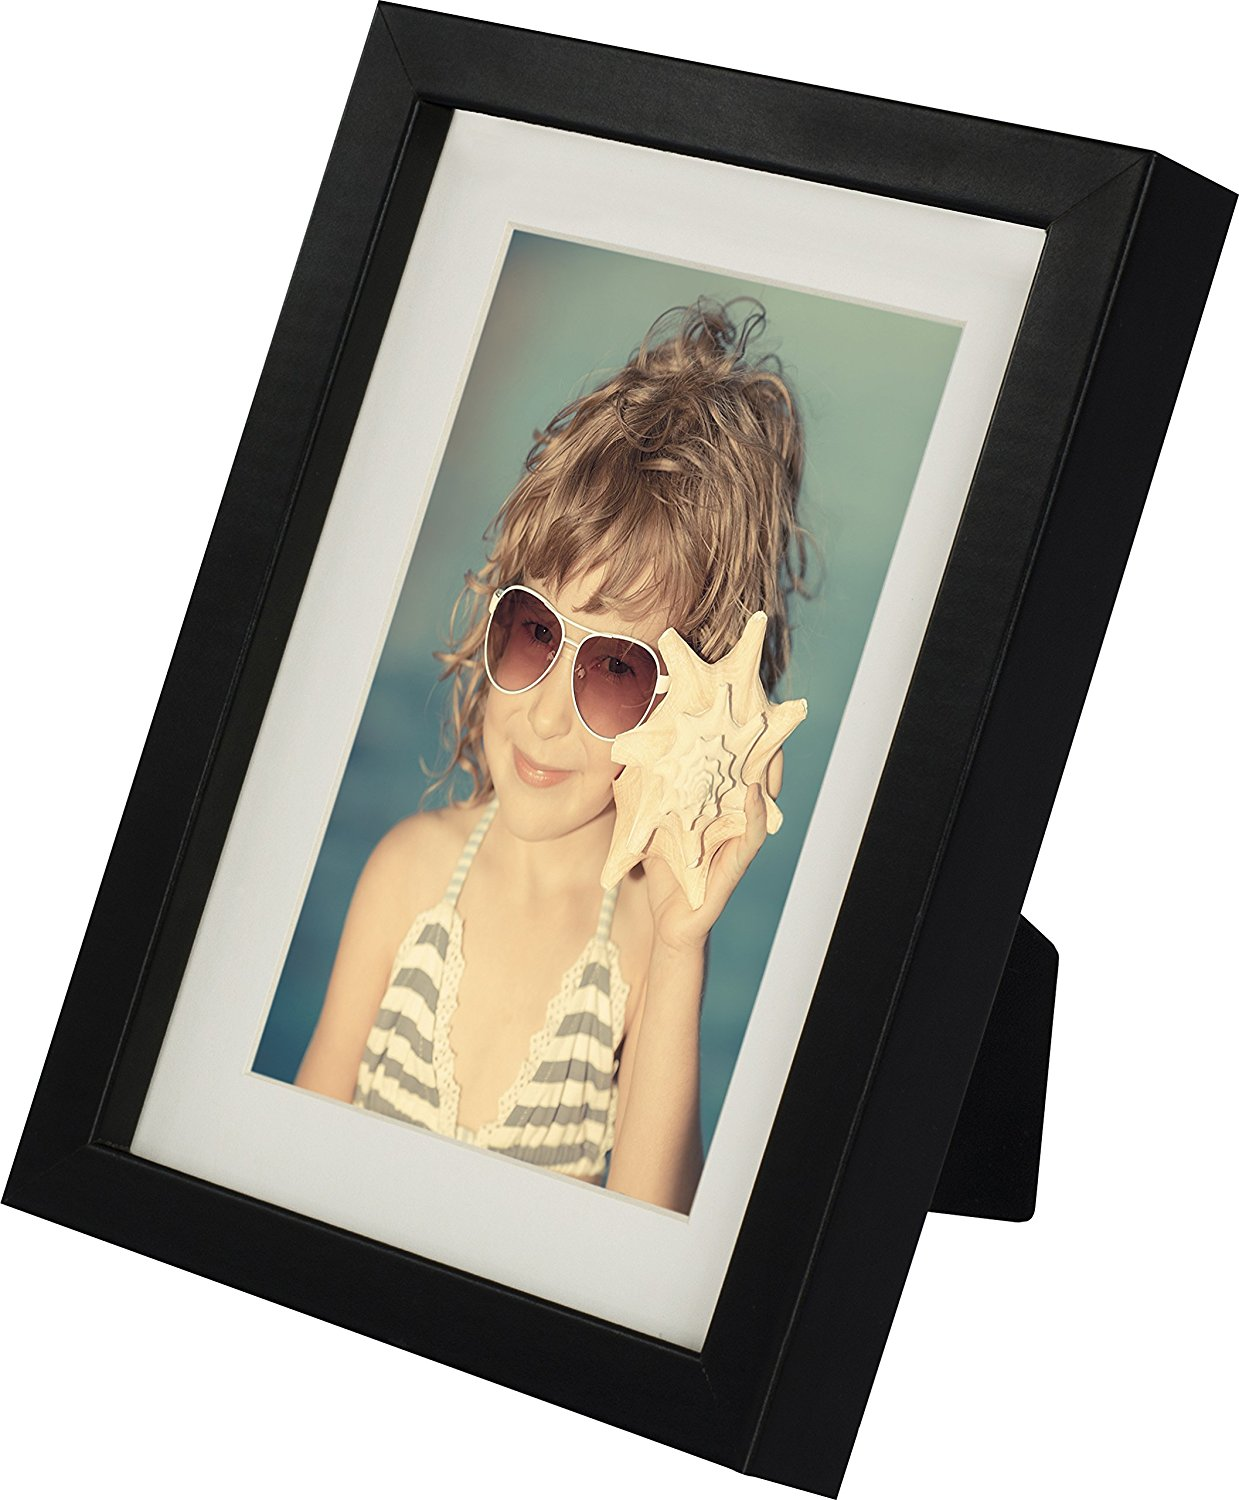 5 x 7-Inch Picture Photo Frame with mount for 4 x 6-Inch photo, 2 Pack, BLACK